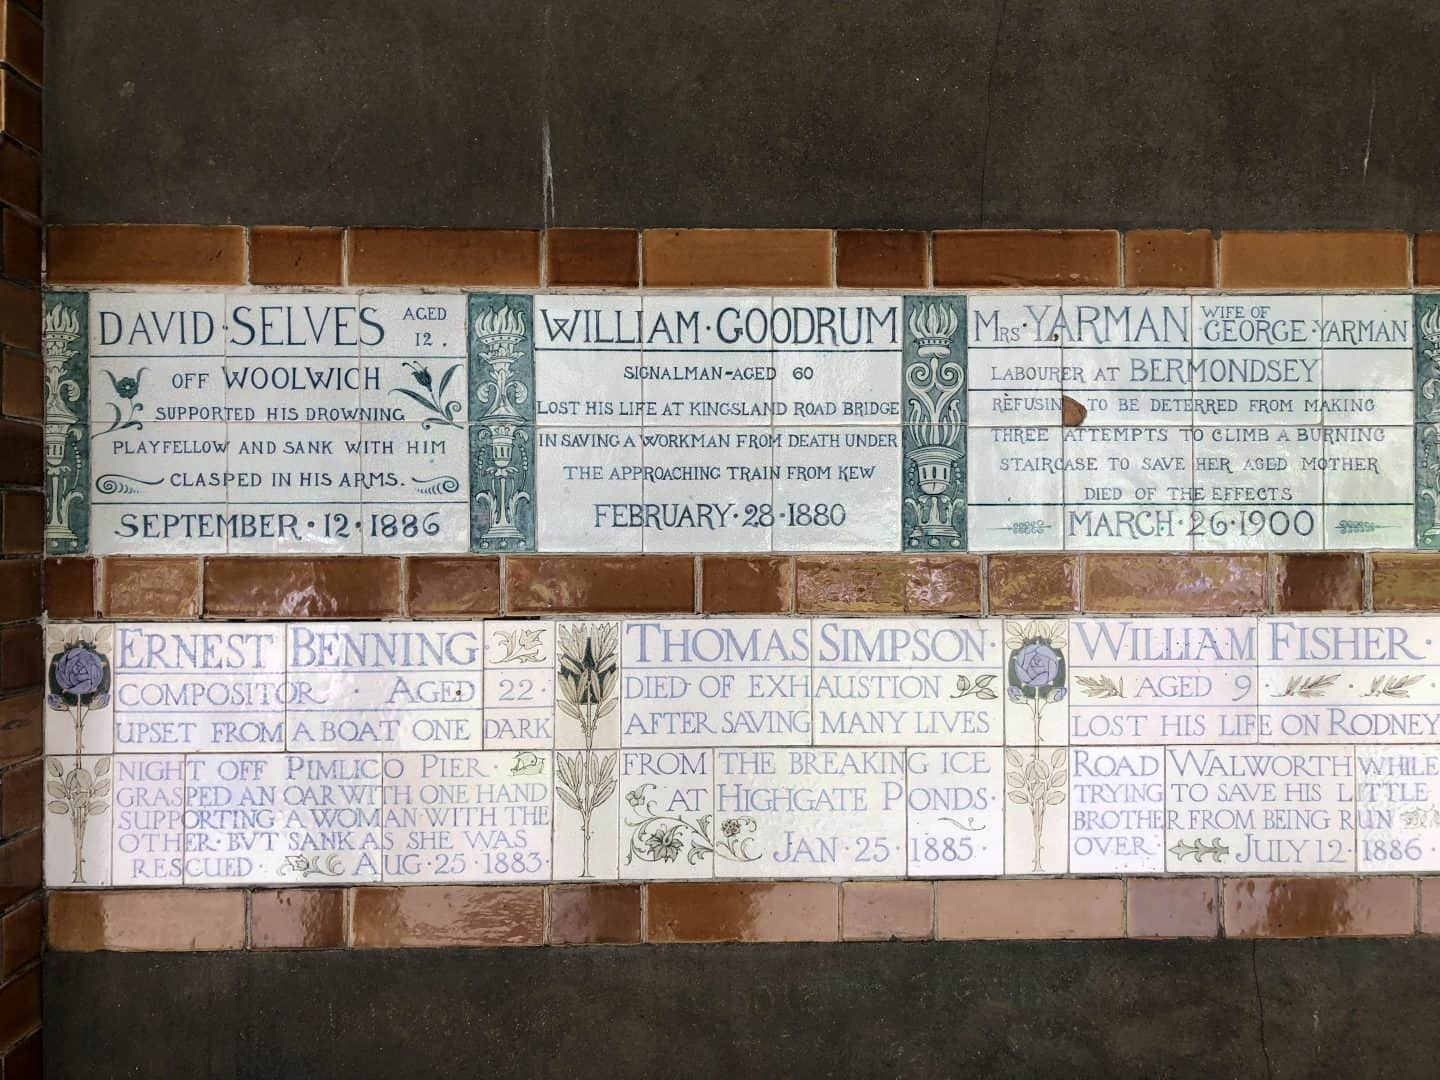 Dog-friendly London The Best Free Dog-friendly Things To Do - Postman's Park Memorial